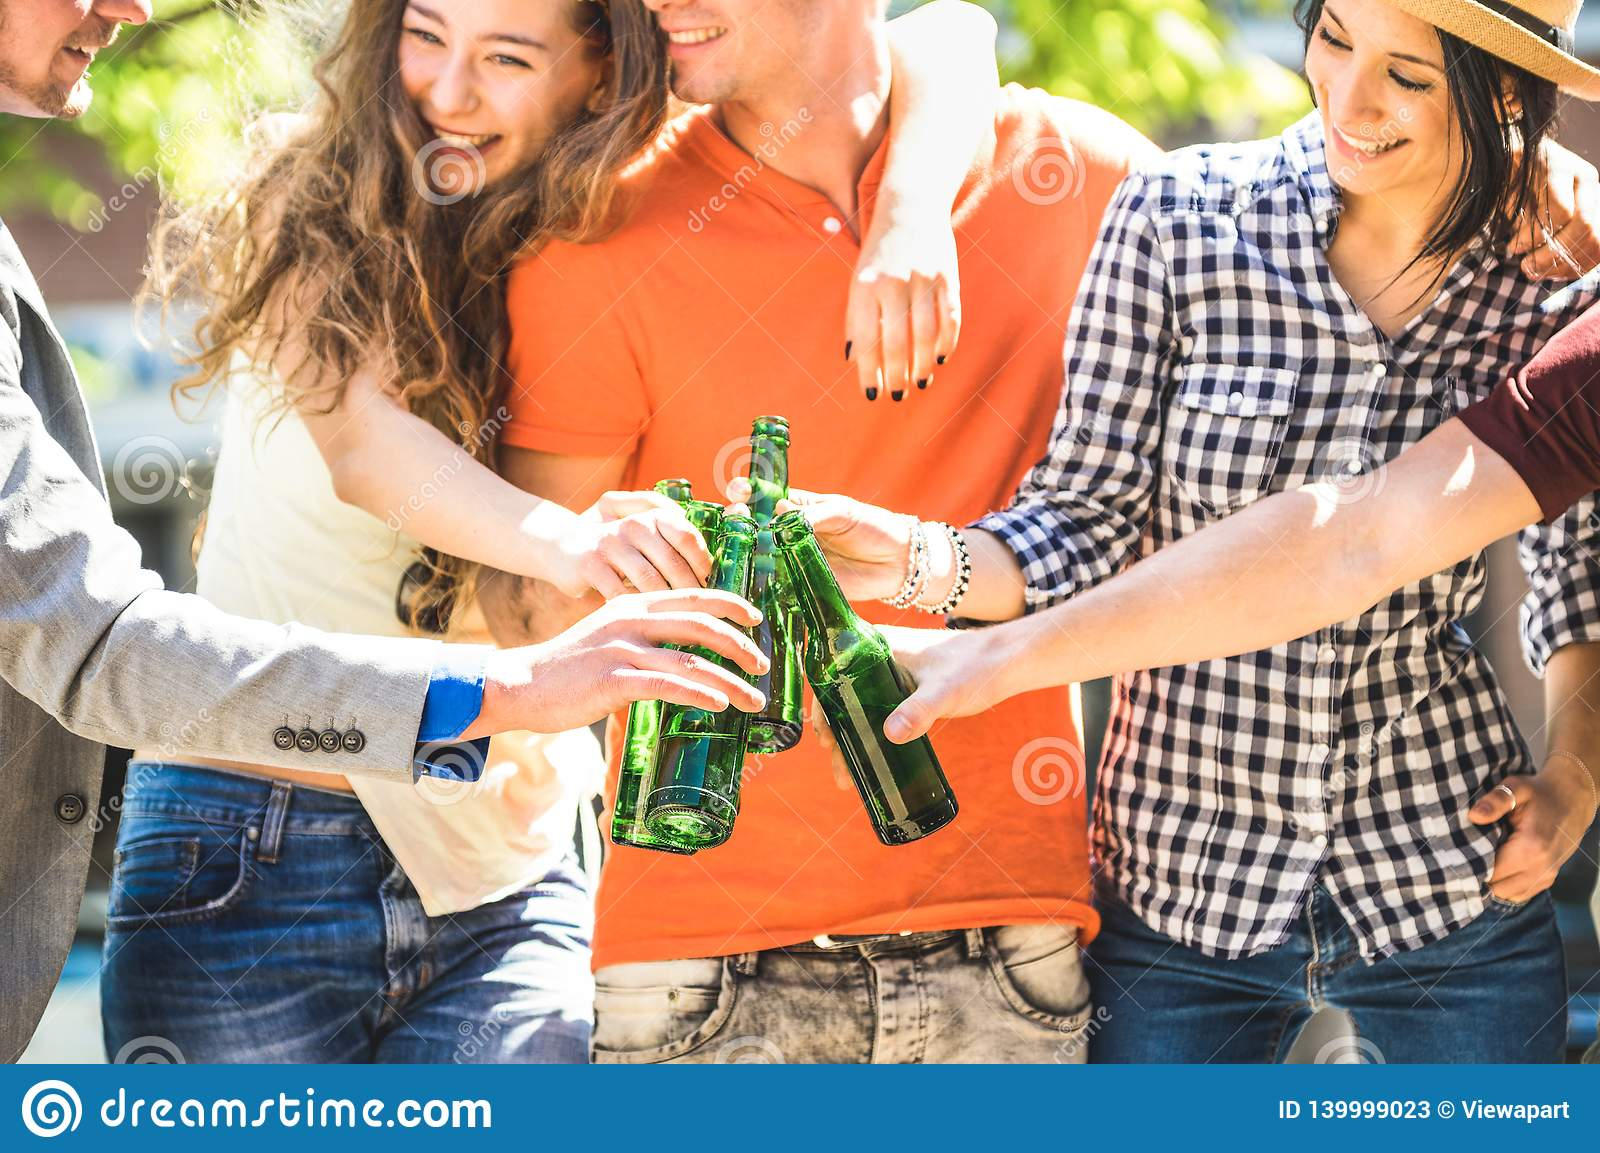 Happy friends group drinking and toasting bottled beer on sunny day outdoors - Friendship concept with young people millennials